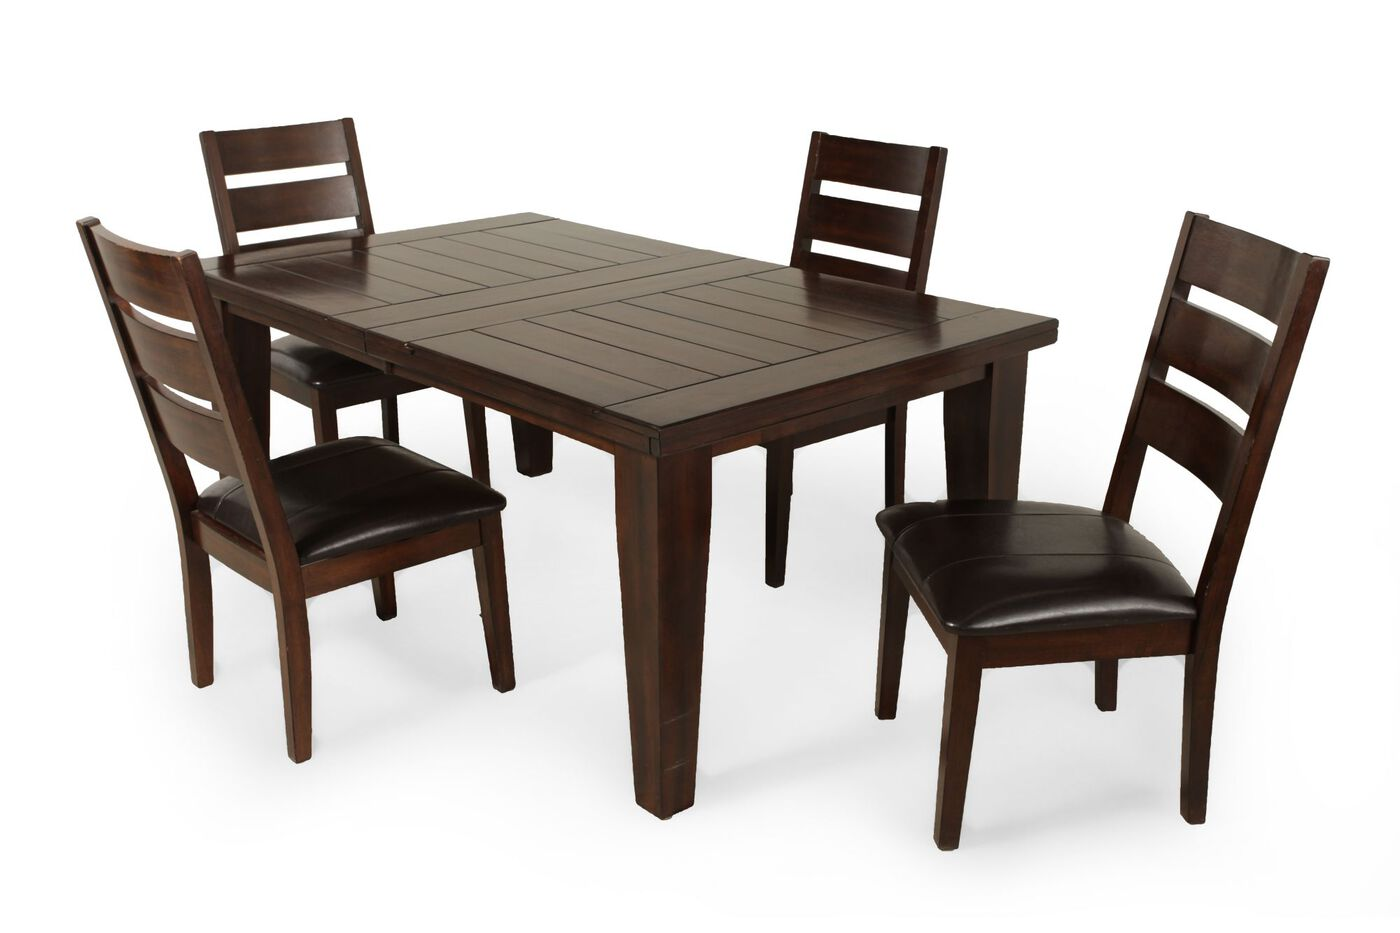 Ashley larchmont five piece extension dining set mathis brothers furniture for Ashley furniture 5 piece living room set